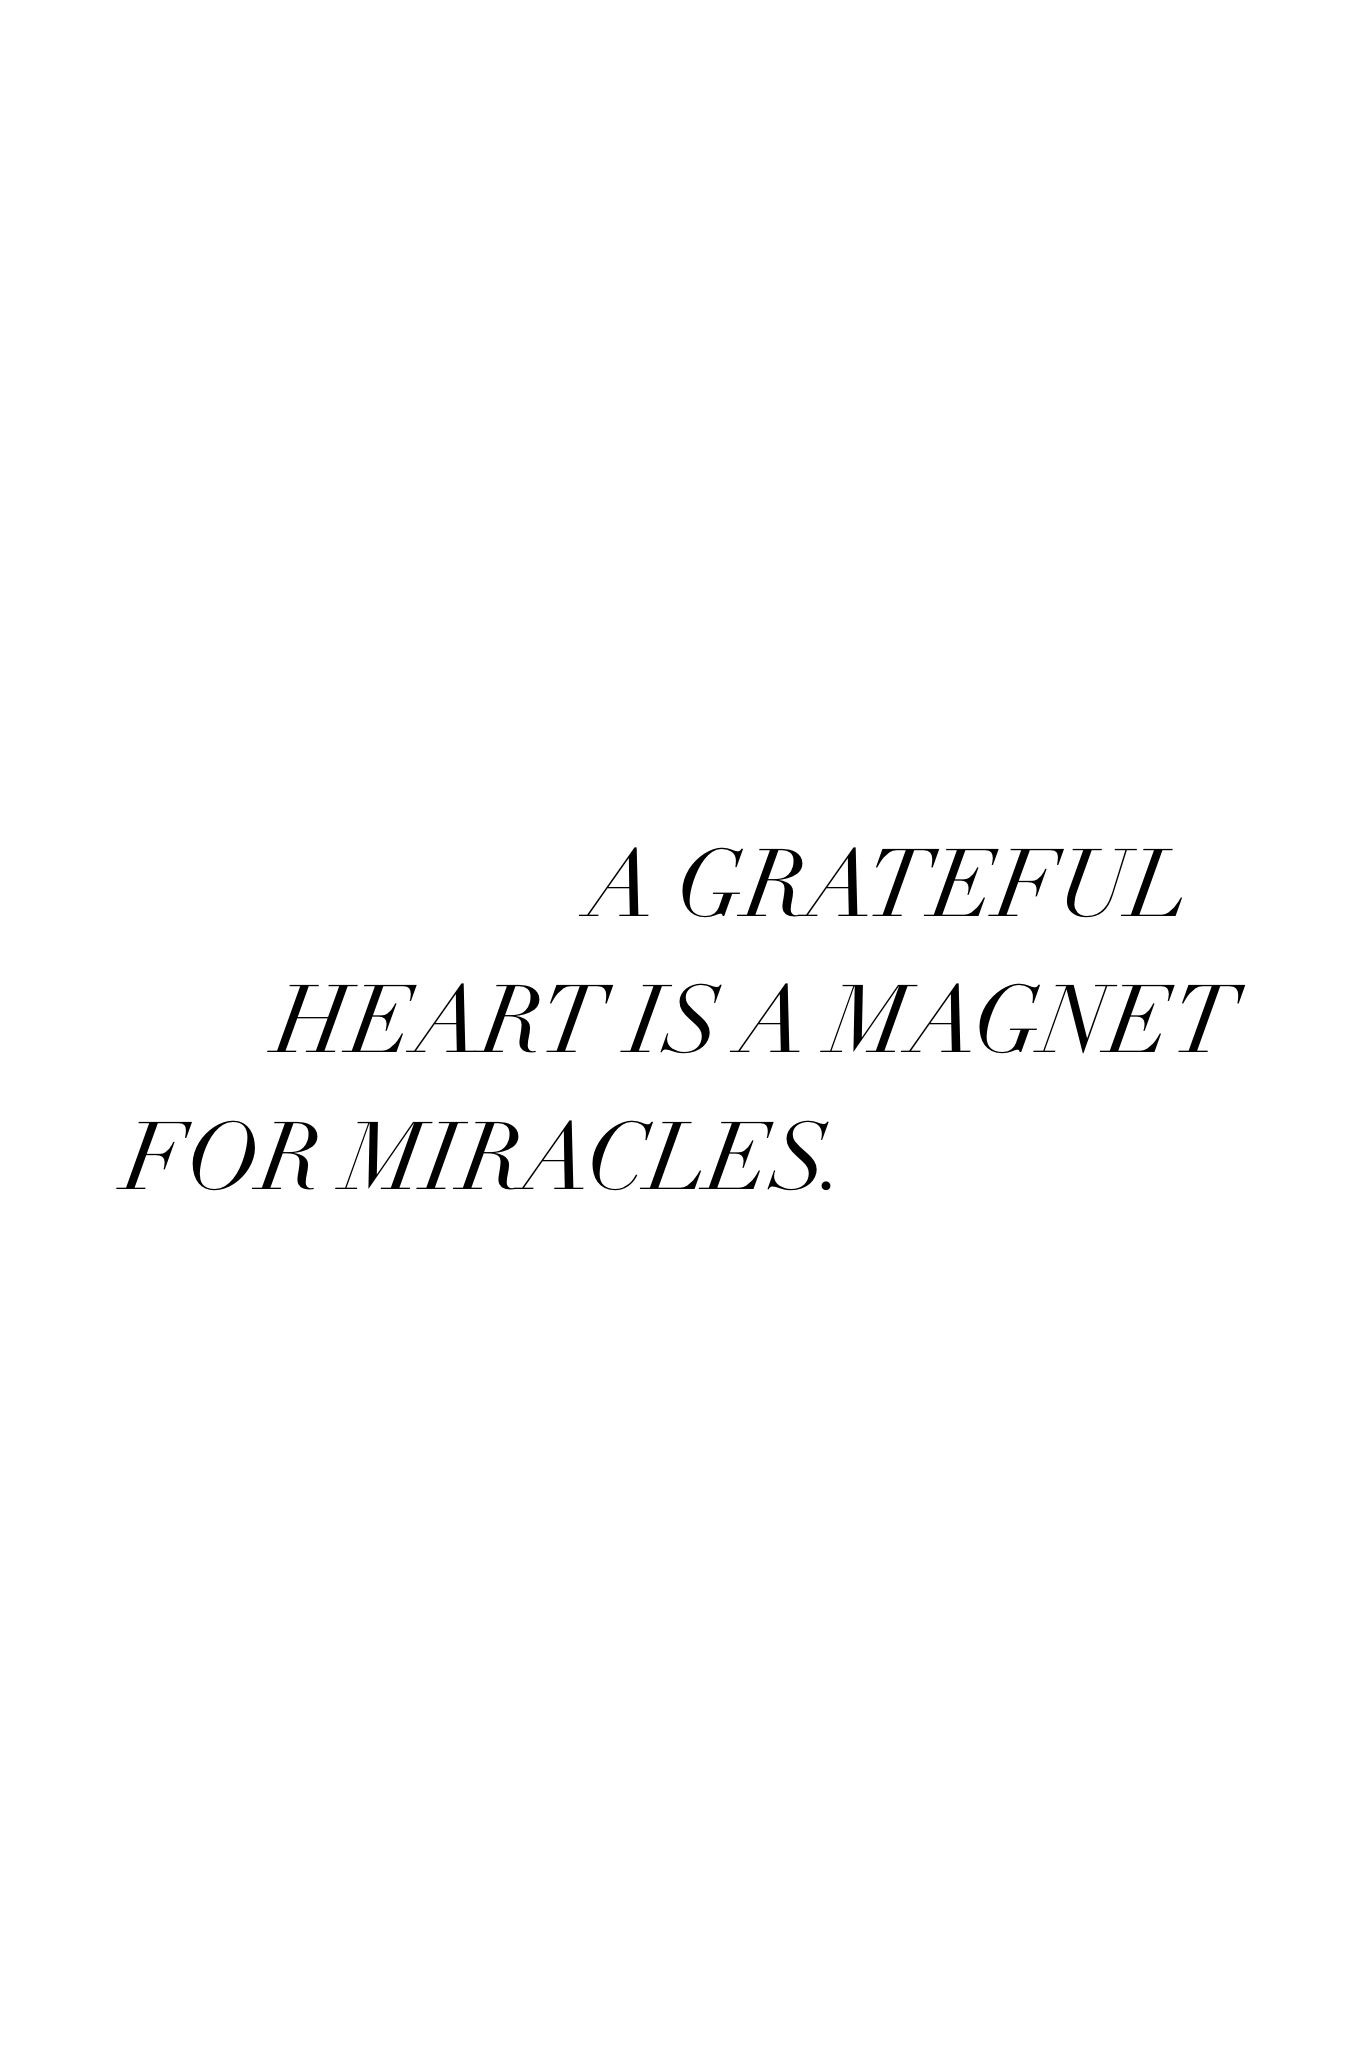 What to give in gratitude